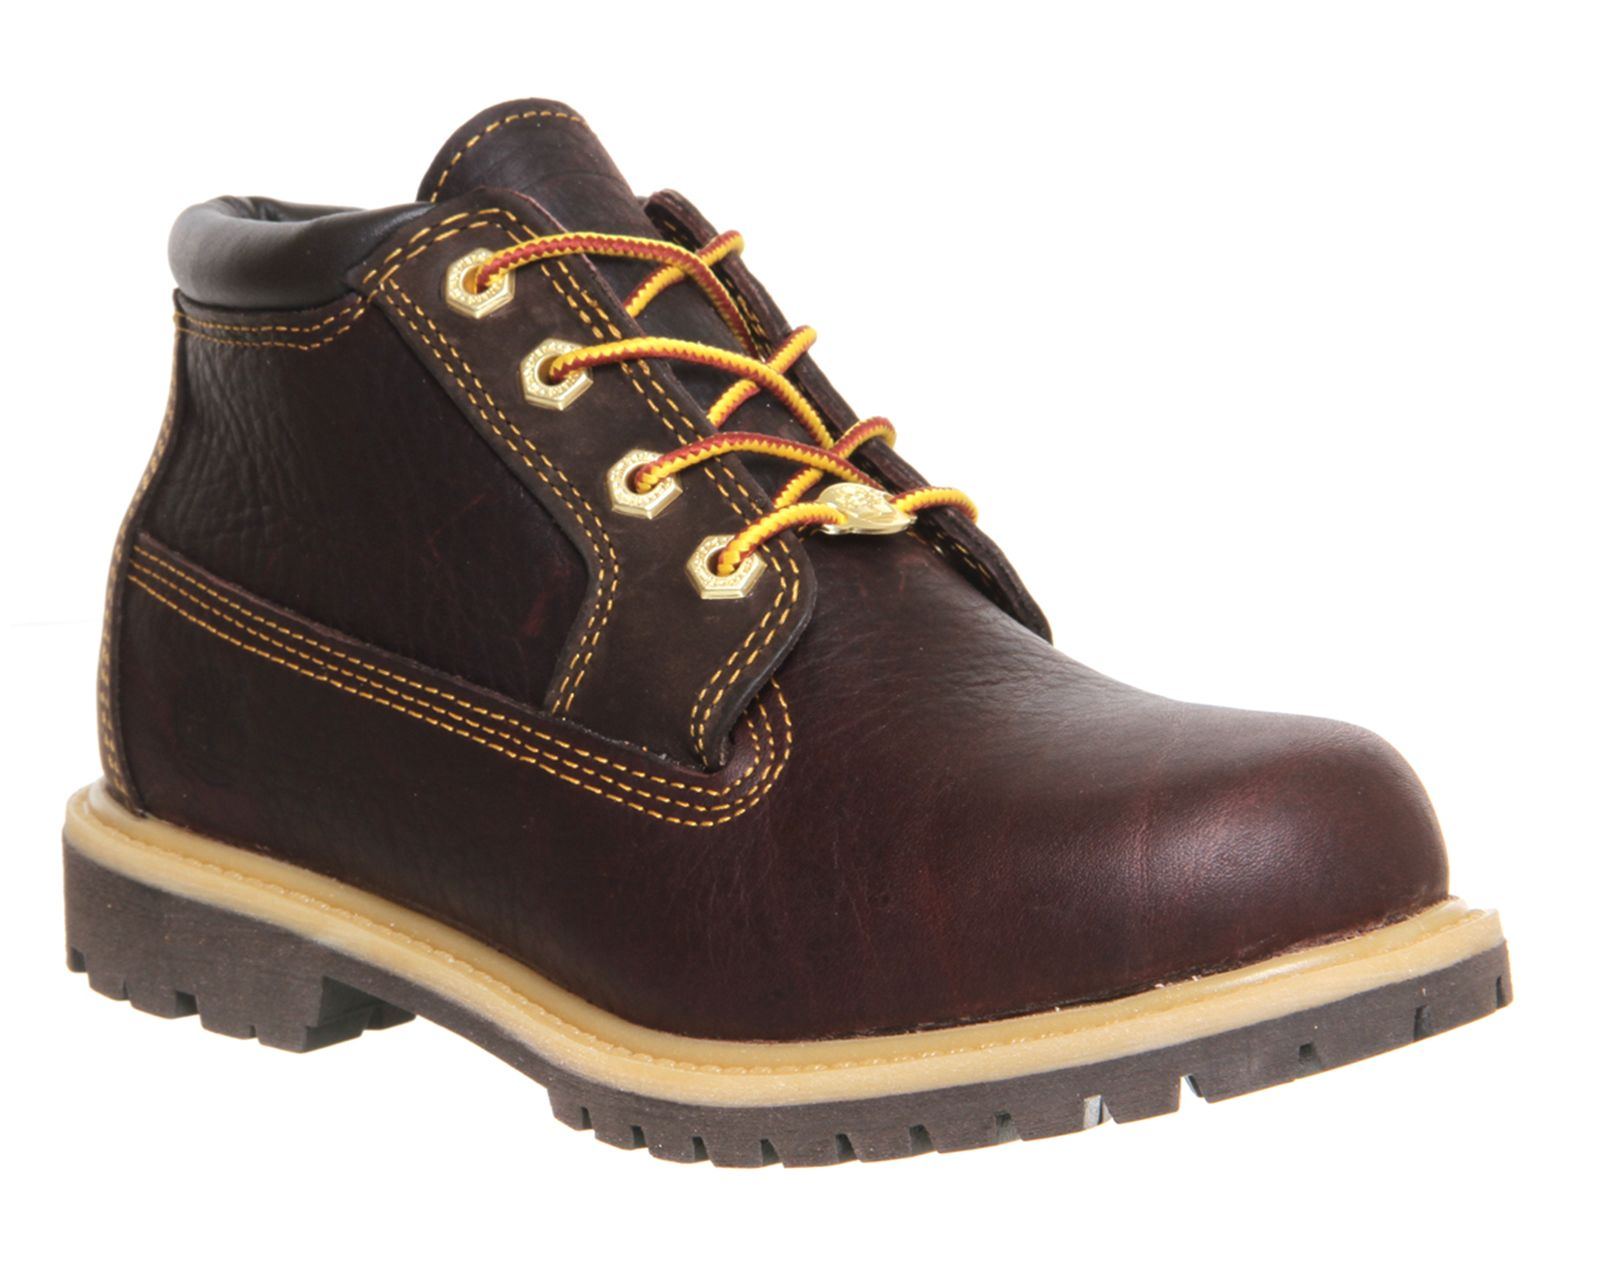 Nellie Chukka Double Waterproof boots | Leather ankle boots